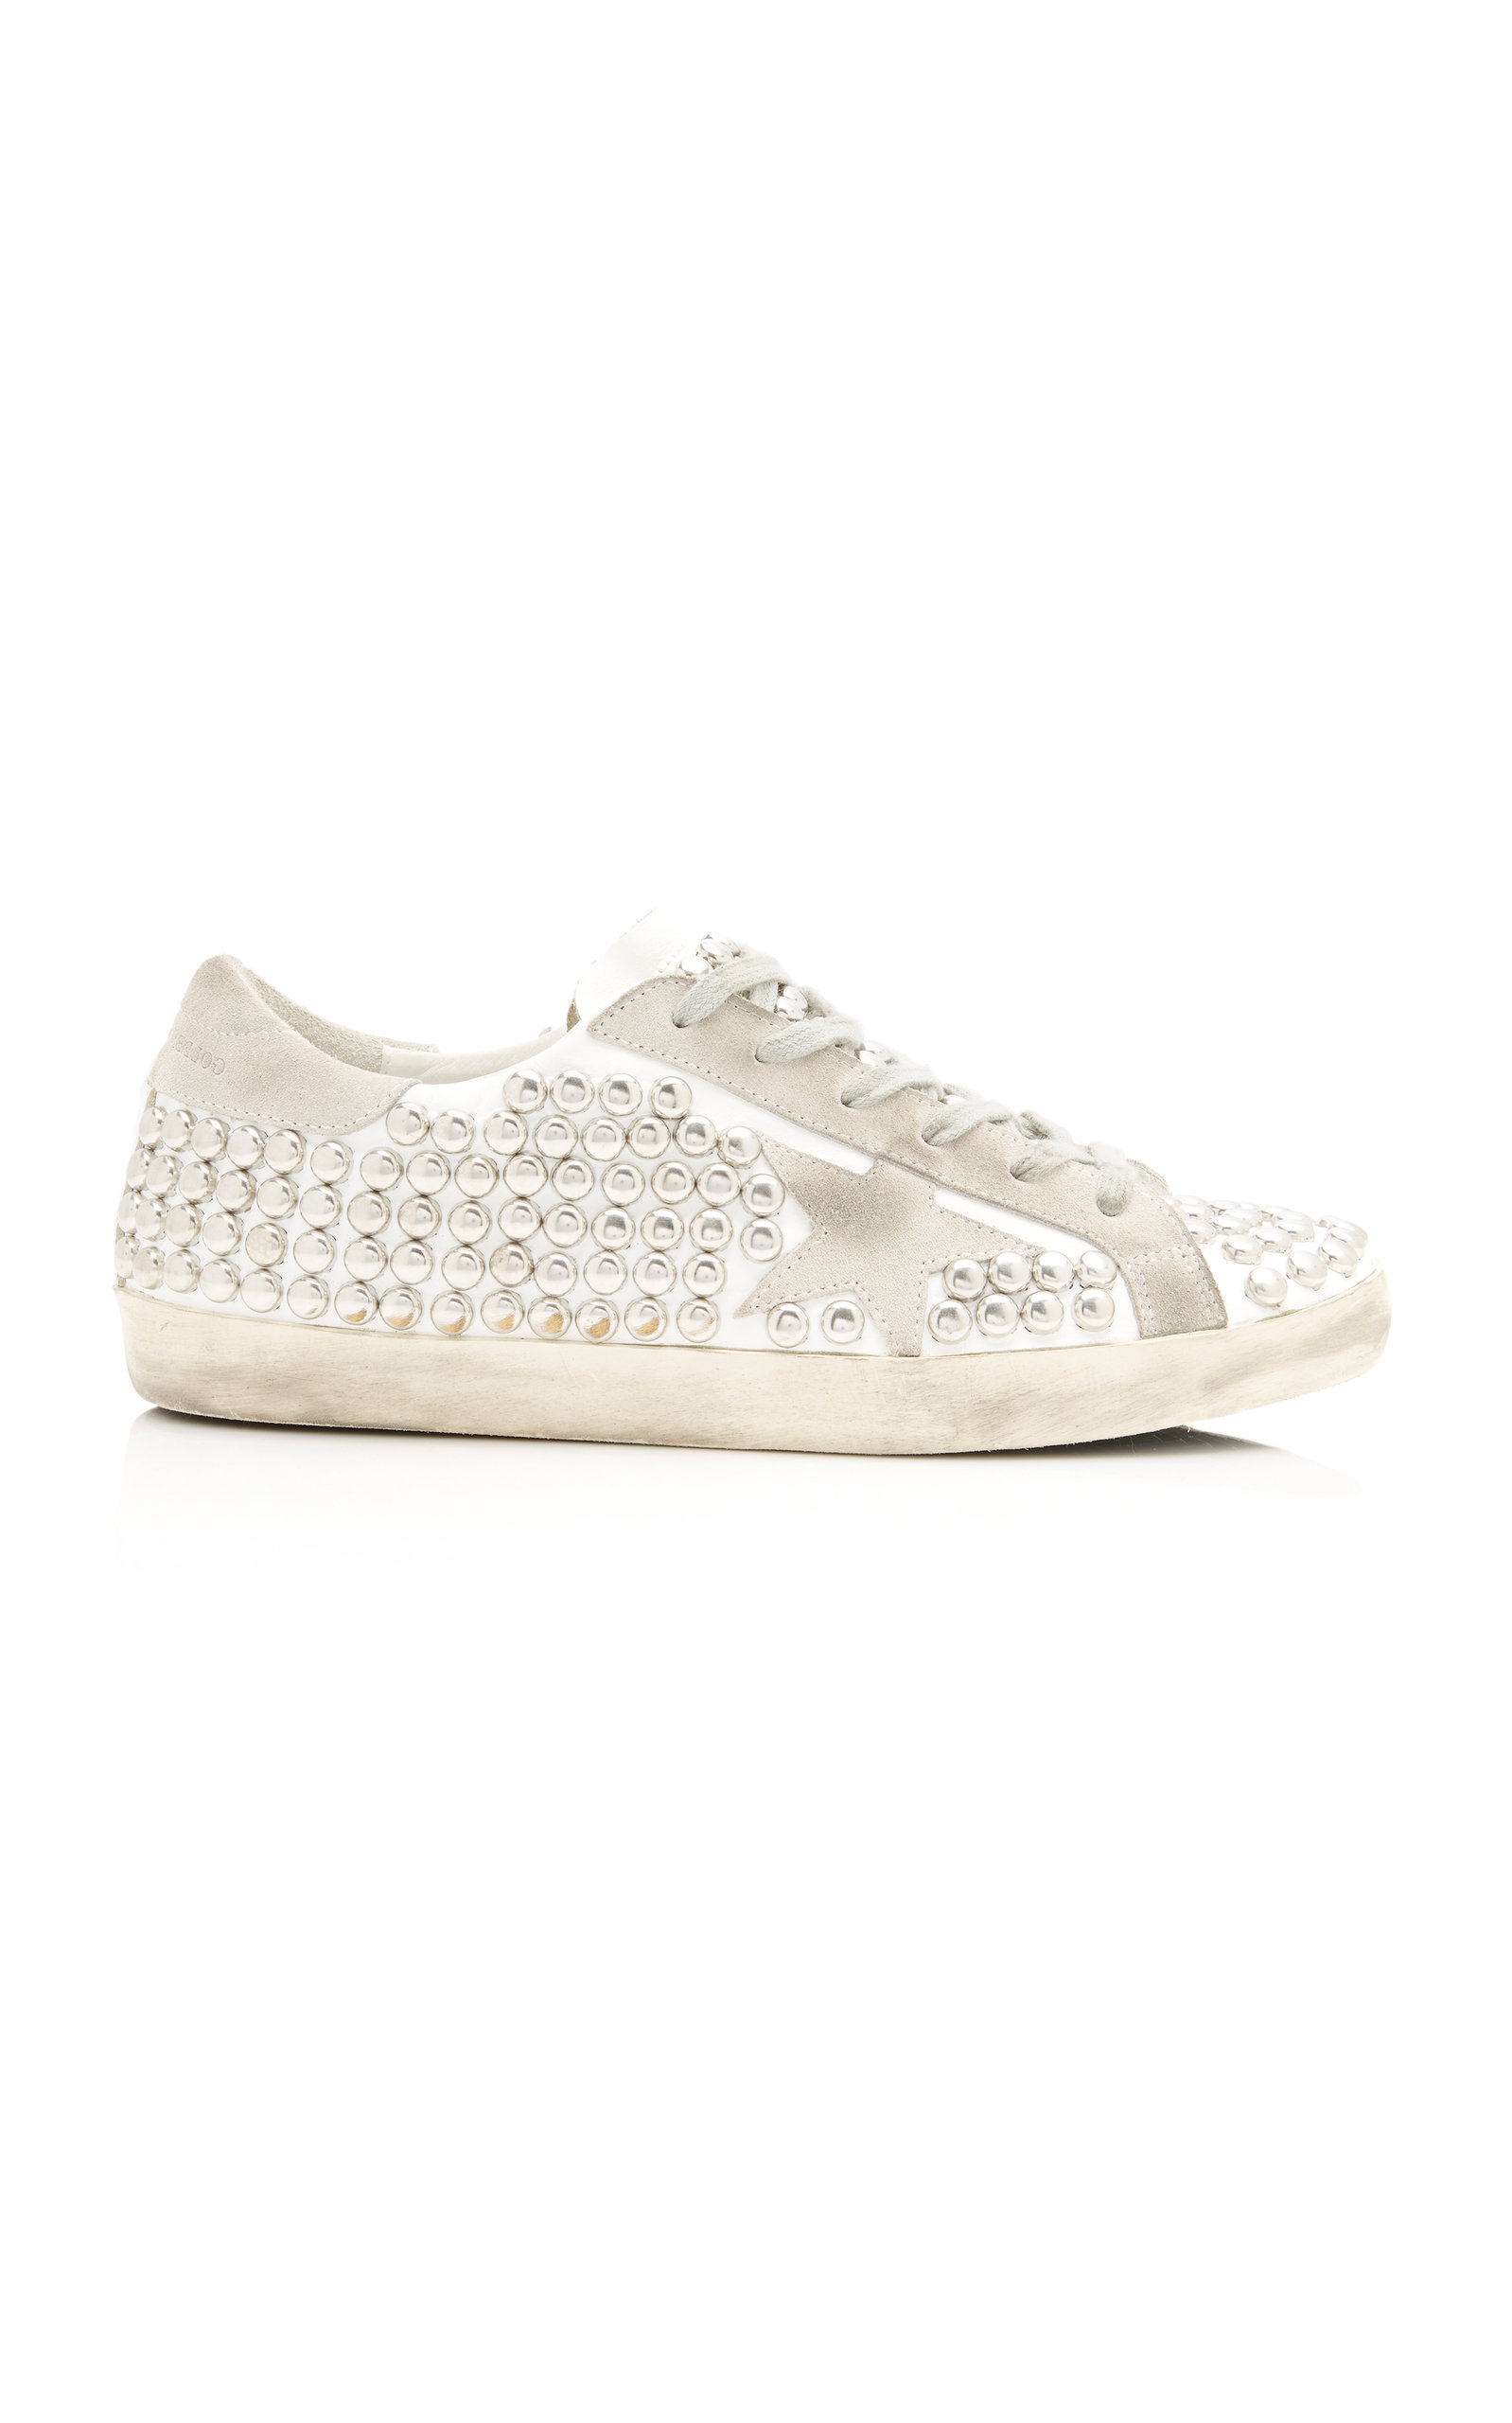 Superstar Distressed Studded Suede And Leather Sneakers by Golden Goose